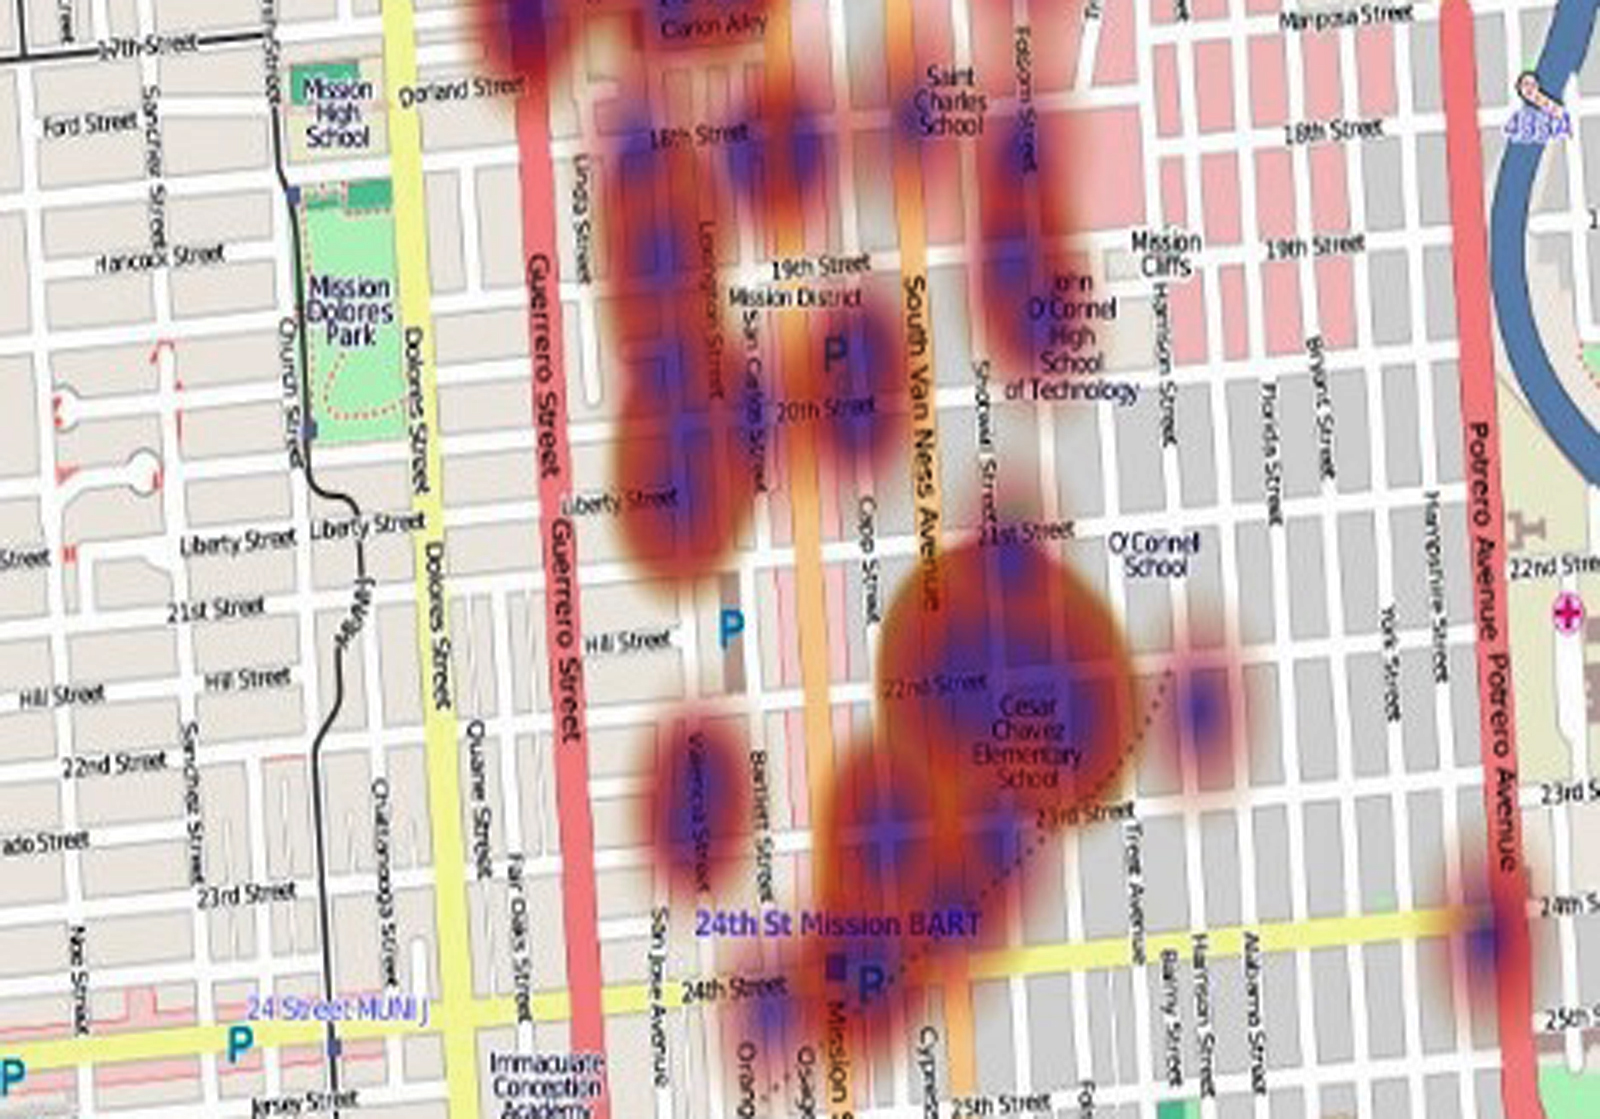 iPhone App Finds 311 Graffiti Gripes Fixed Slowly